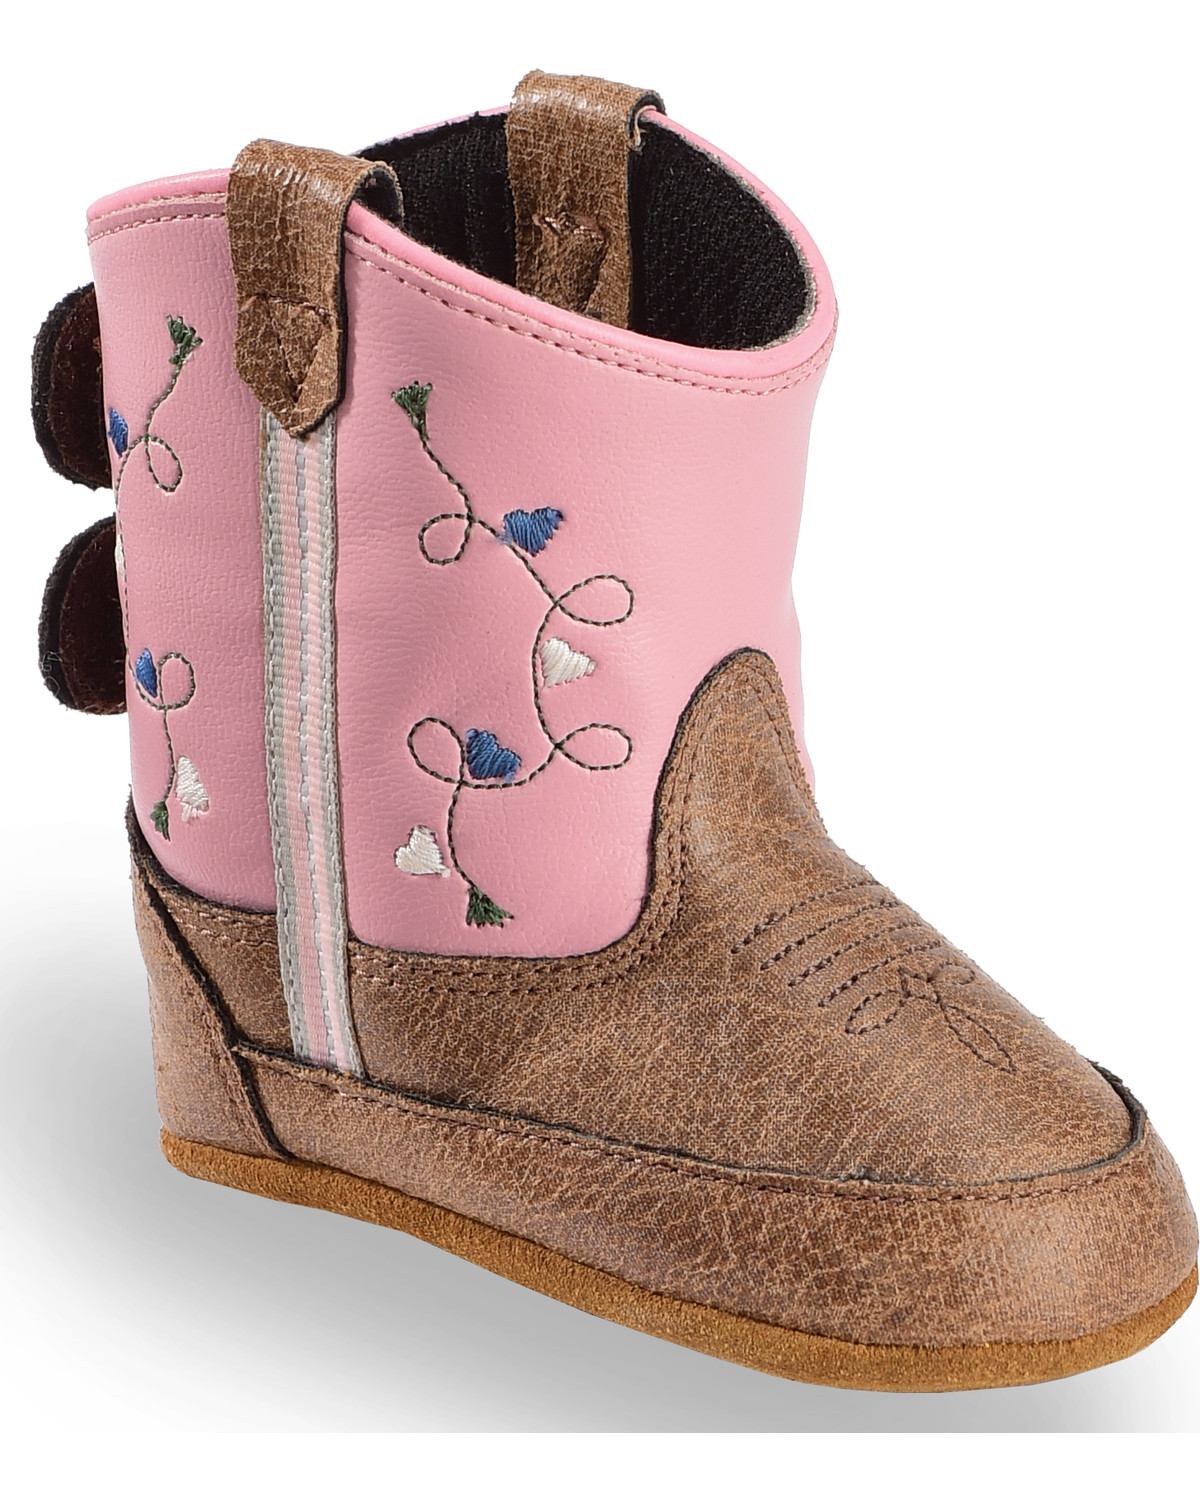 Old West Infant Girls' Pink Boots